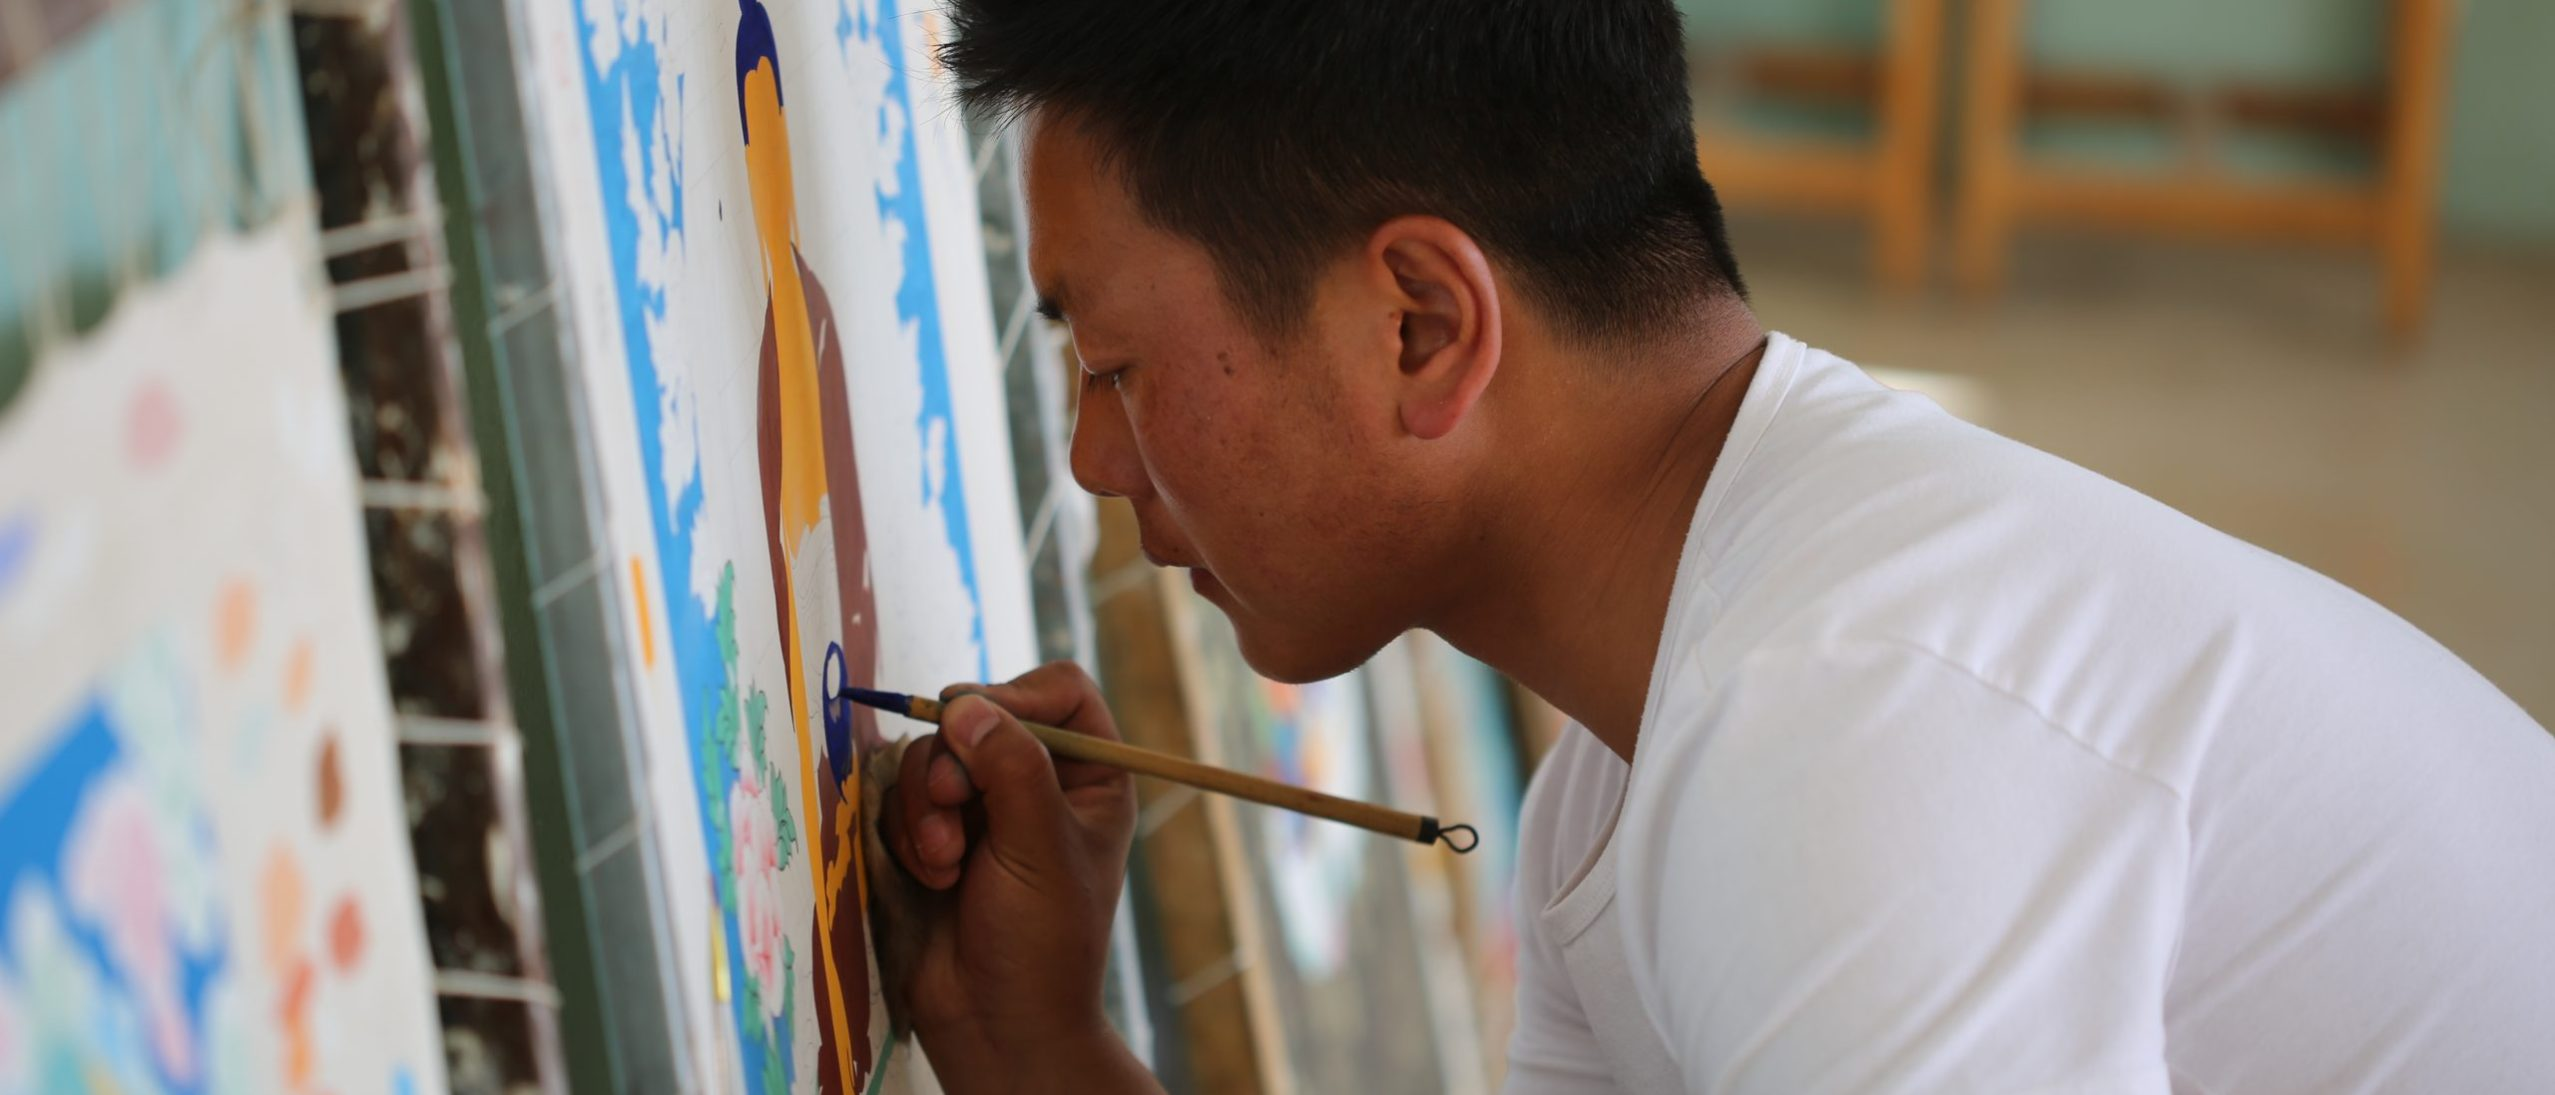 photo of a man painting on a canvas